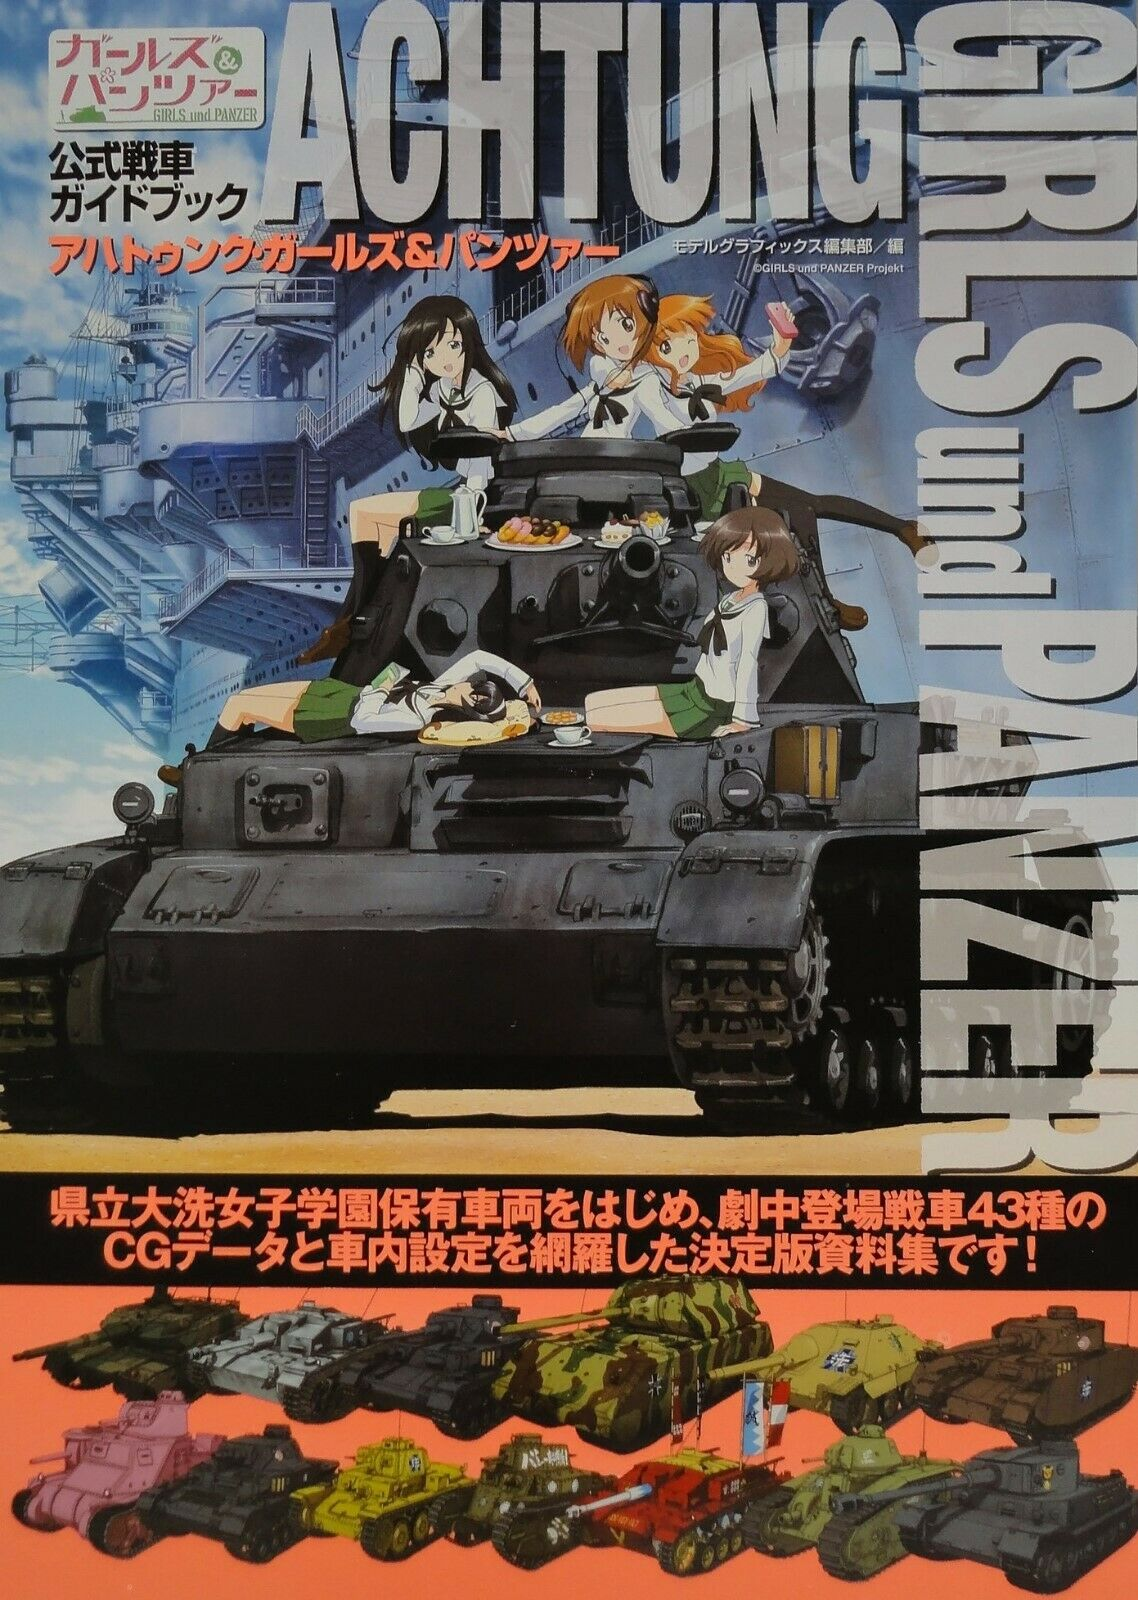 Girls und Panzer Anime Manga Art and Guide Book